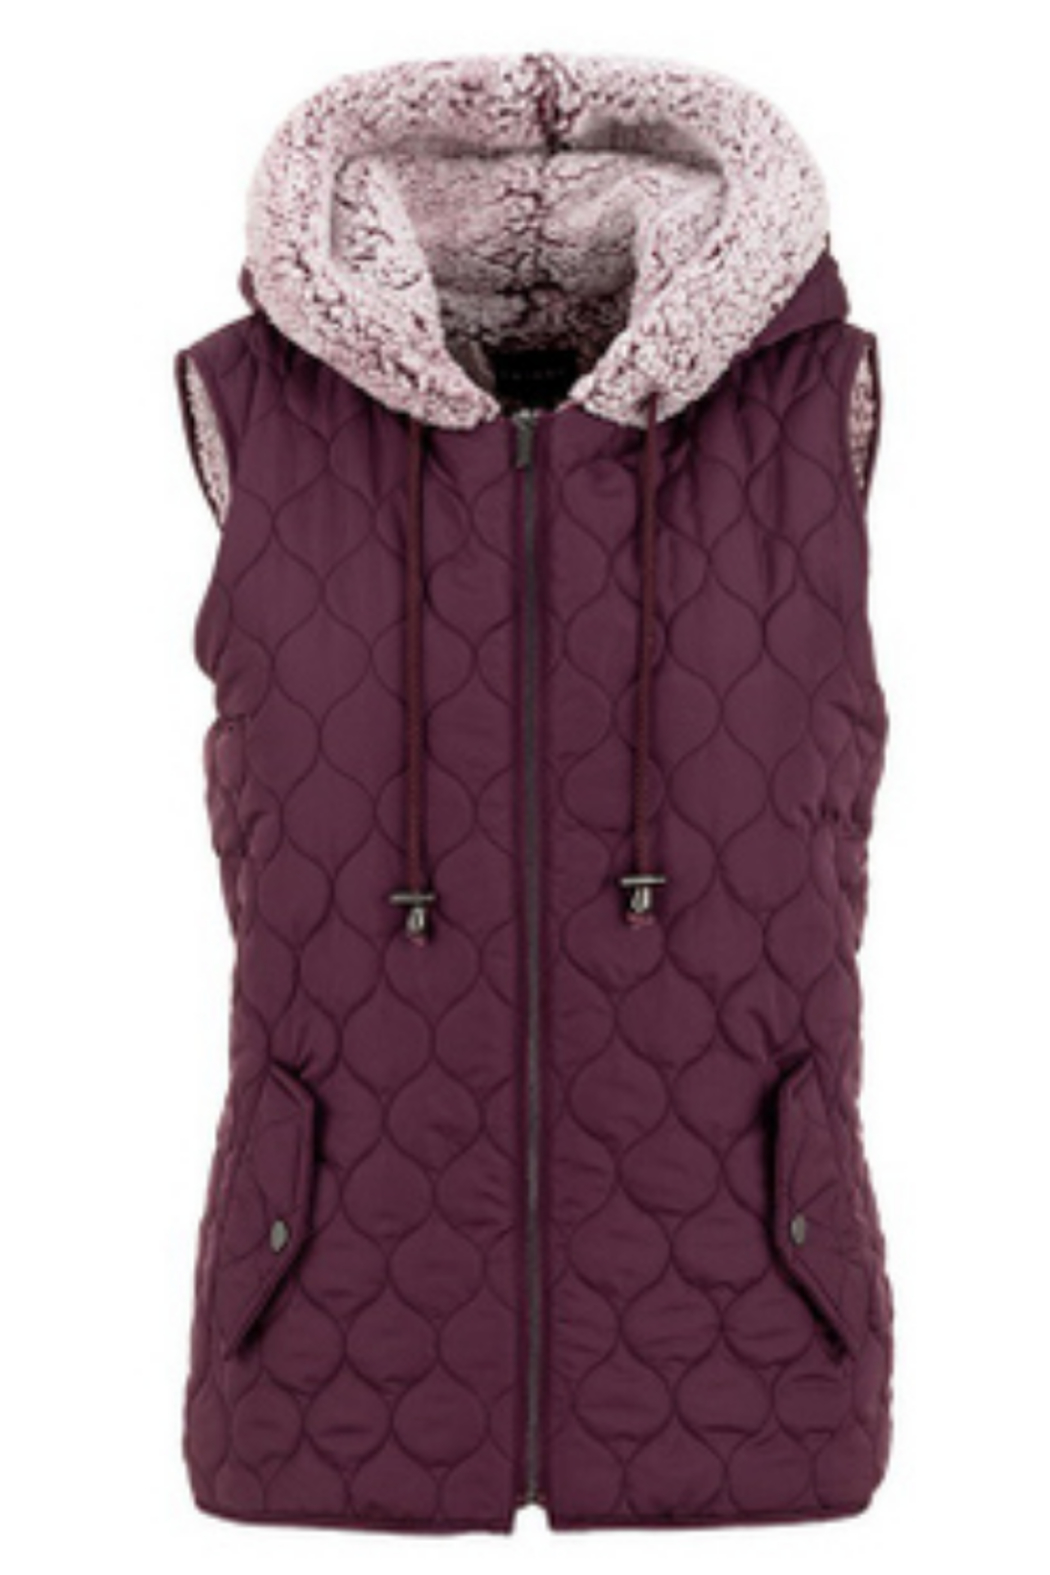 Tribal  Hooded Quilted Vest W/Sherpa Lining Wine 43810/3056/0009 - Main Image